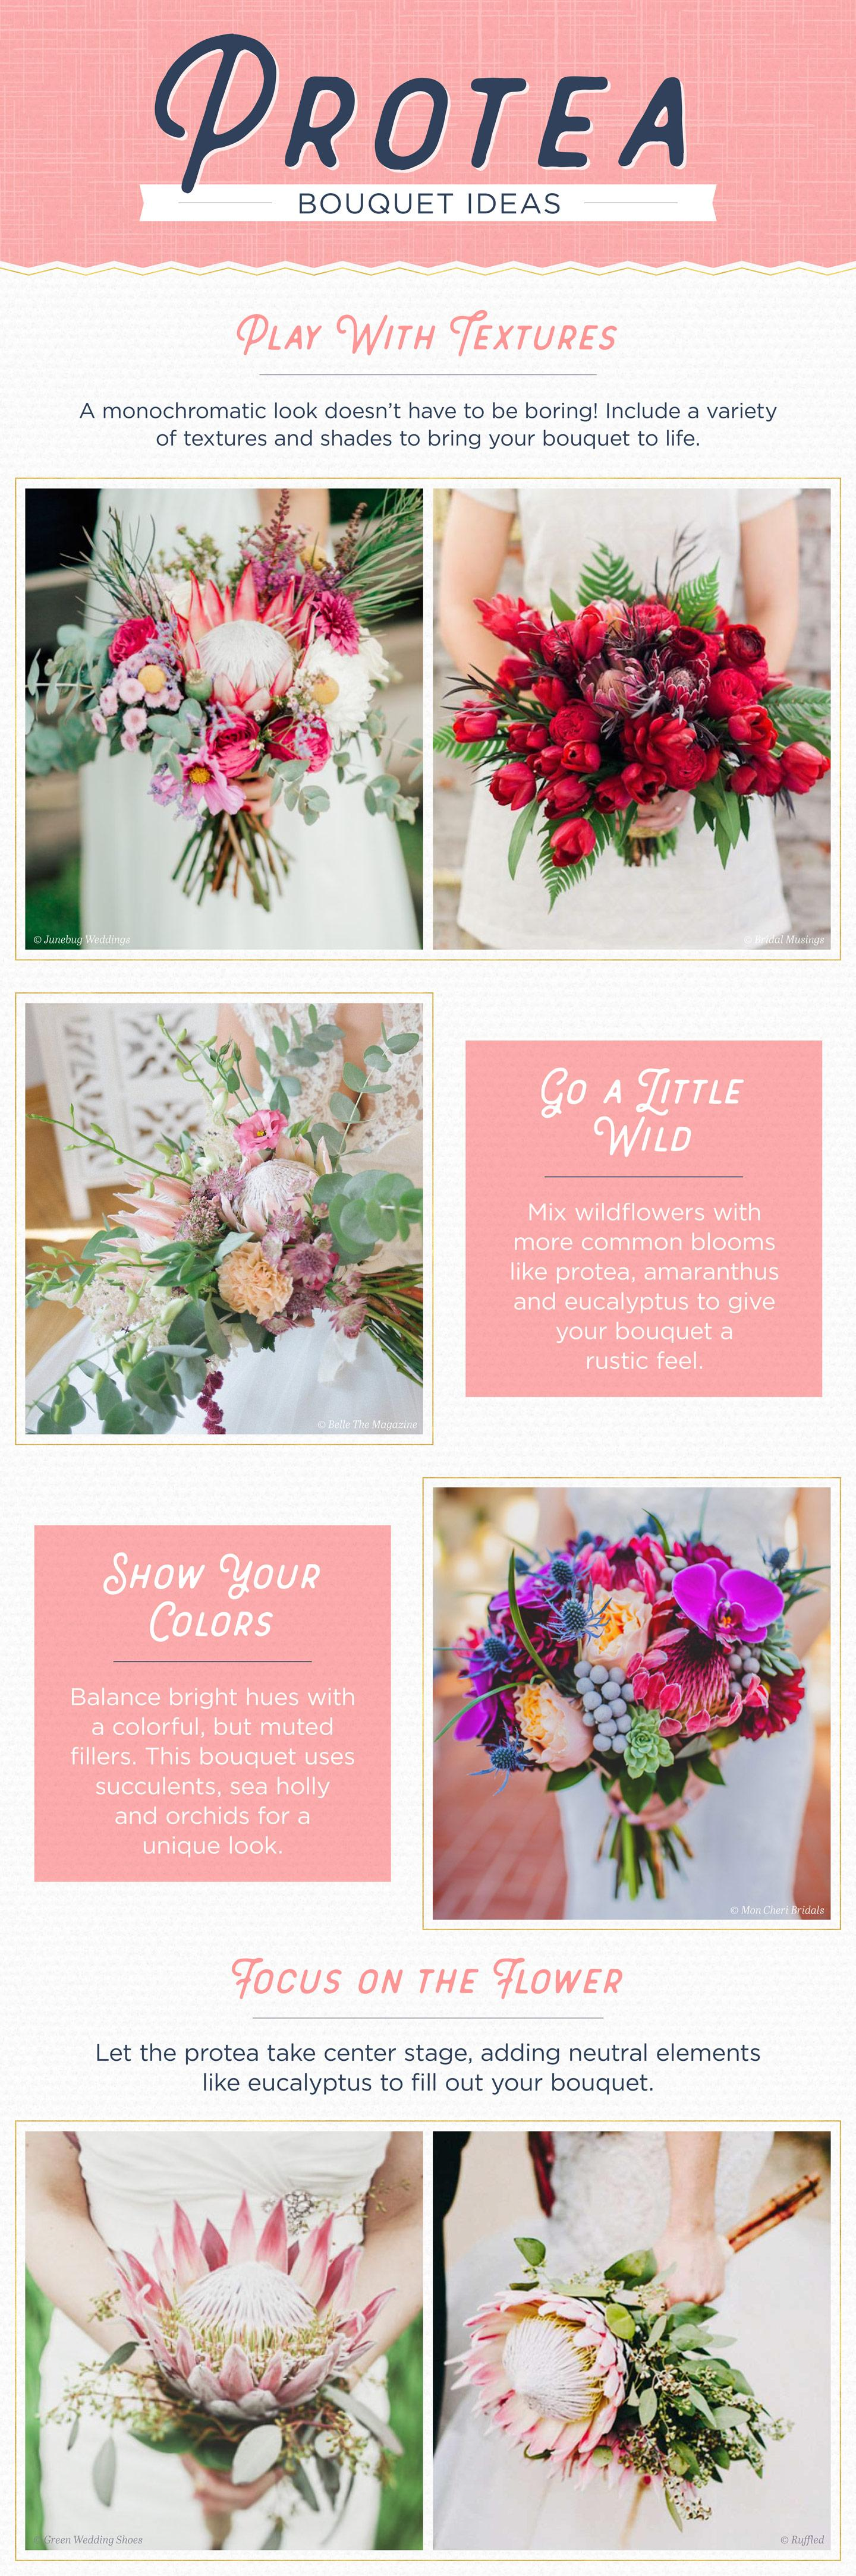 11 Protea Ideas for your Wedding FTD Flowers Philly In Love Philadelphia Weddings